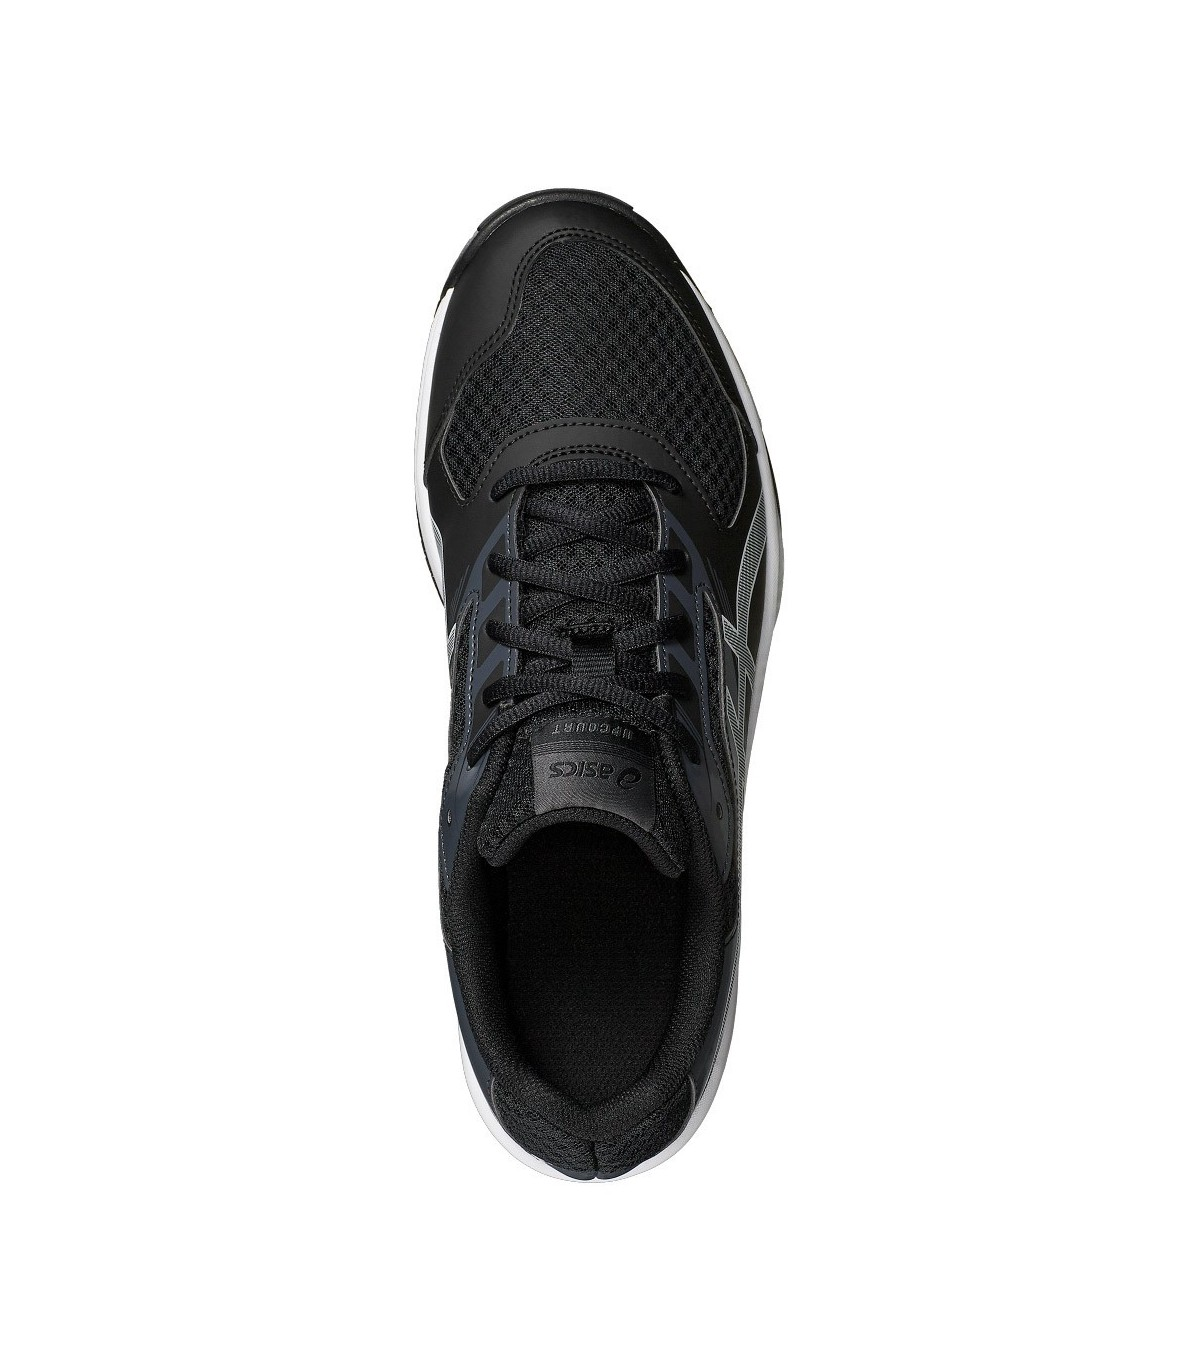 ... Asics UpCourt 2 Classic Black Squash shoes · Asics ... 9be79e6c46a2b